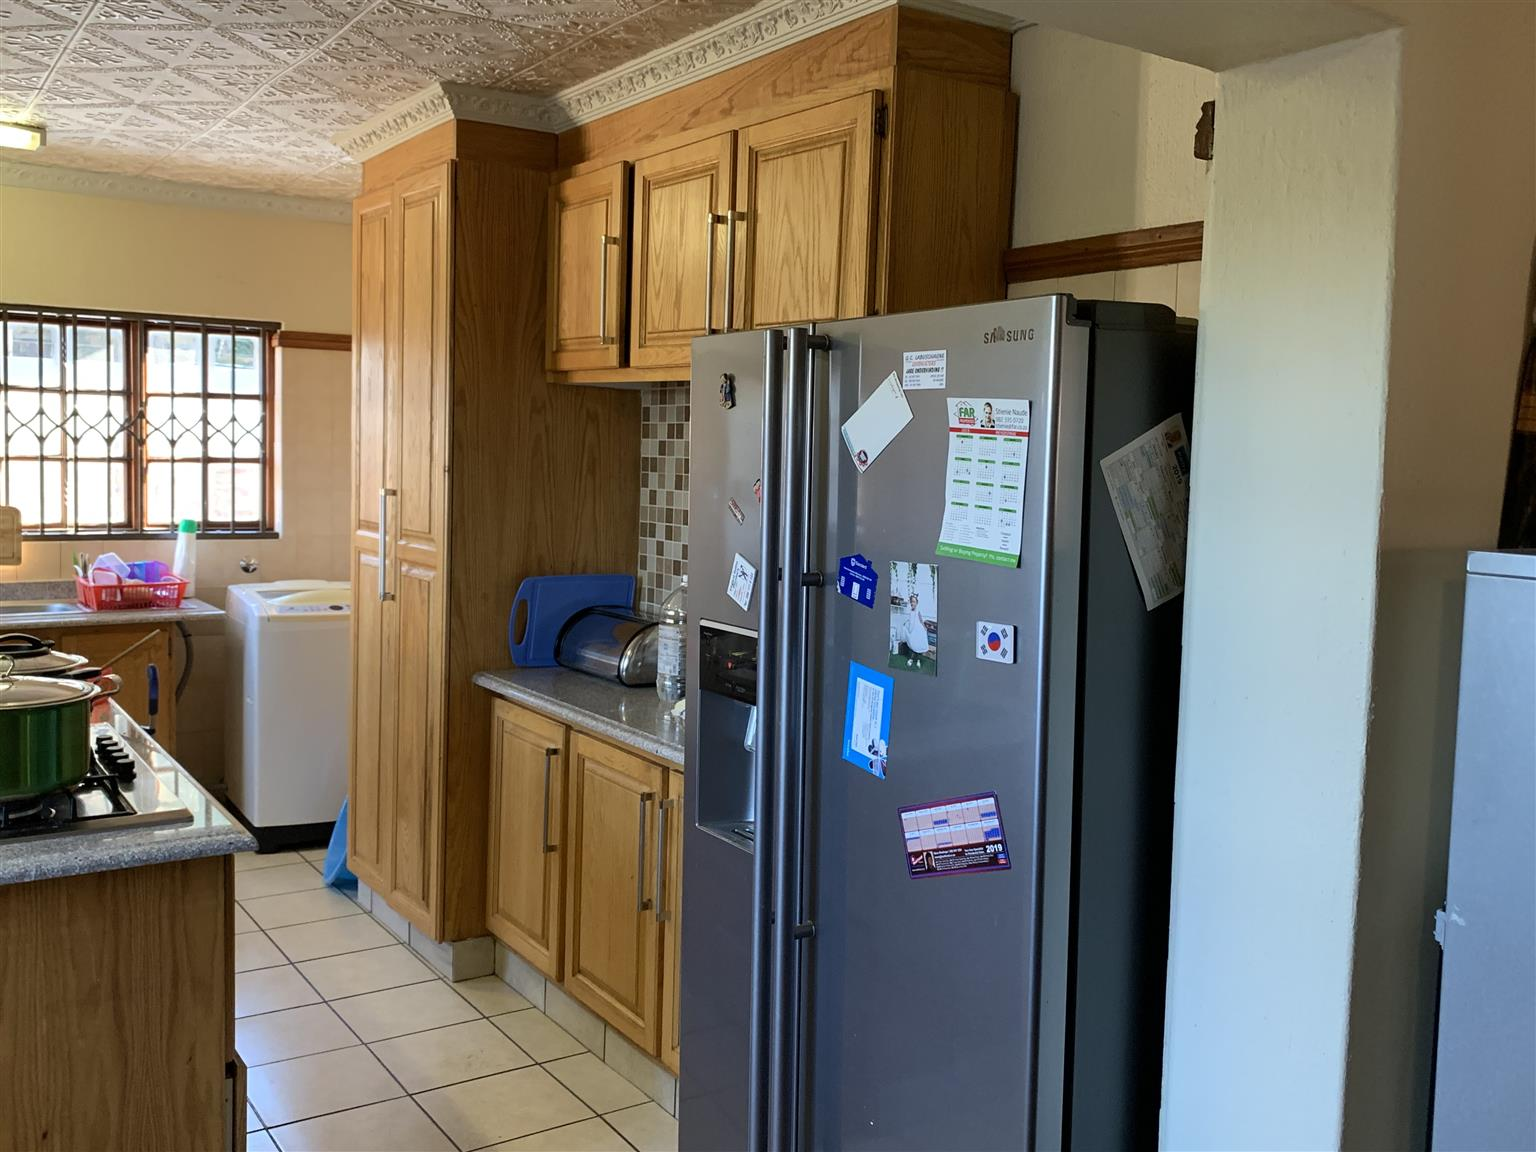 For rent: Stunning 5 bedroom , 3 bathroom home within 850m from Menlyn Shopping Mall and 1,2Km from Time Square. Easy access to N1, N4 and R21. In the vicinity of best schools and Varsity College and University of Pretoria.